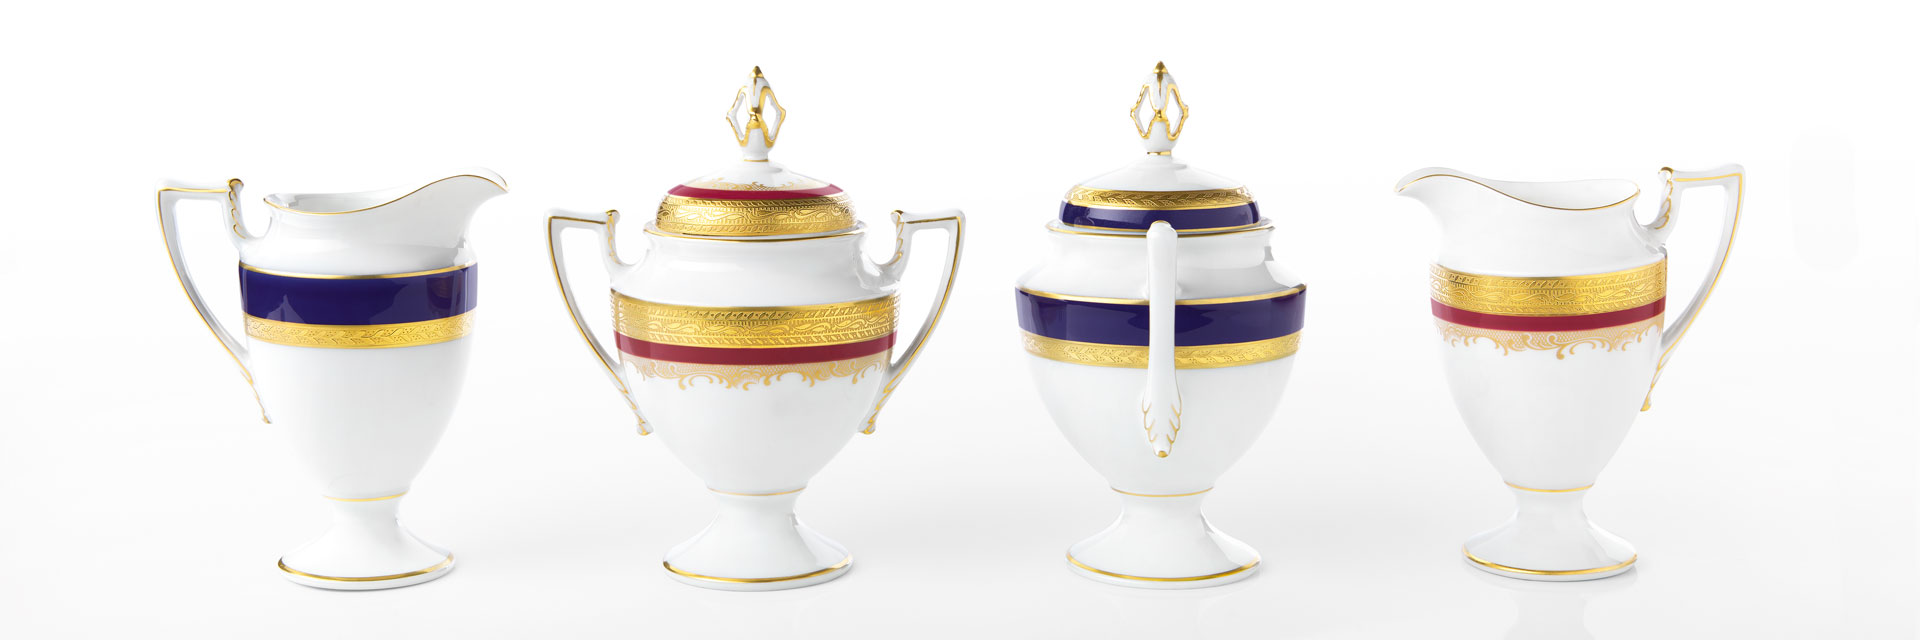 Iphigenie - The benchmark for superior artistic porcelain craftsmanship